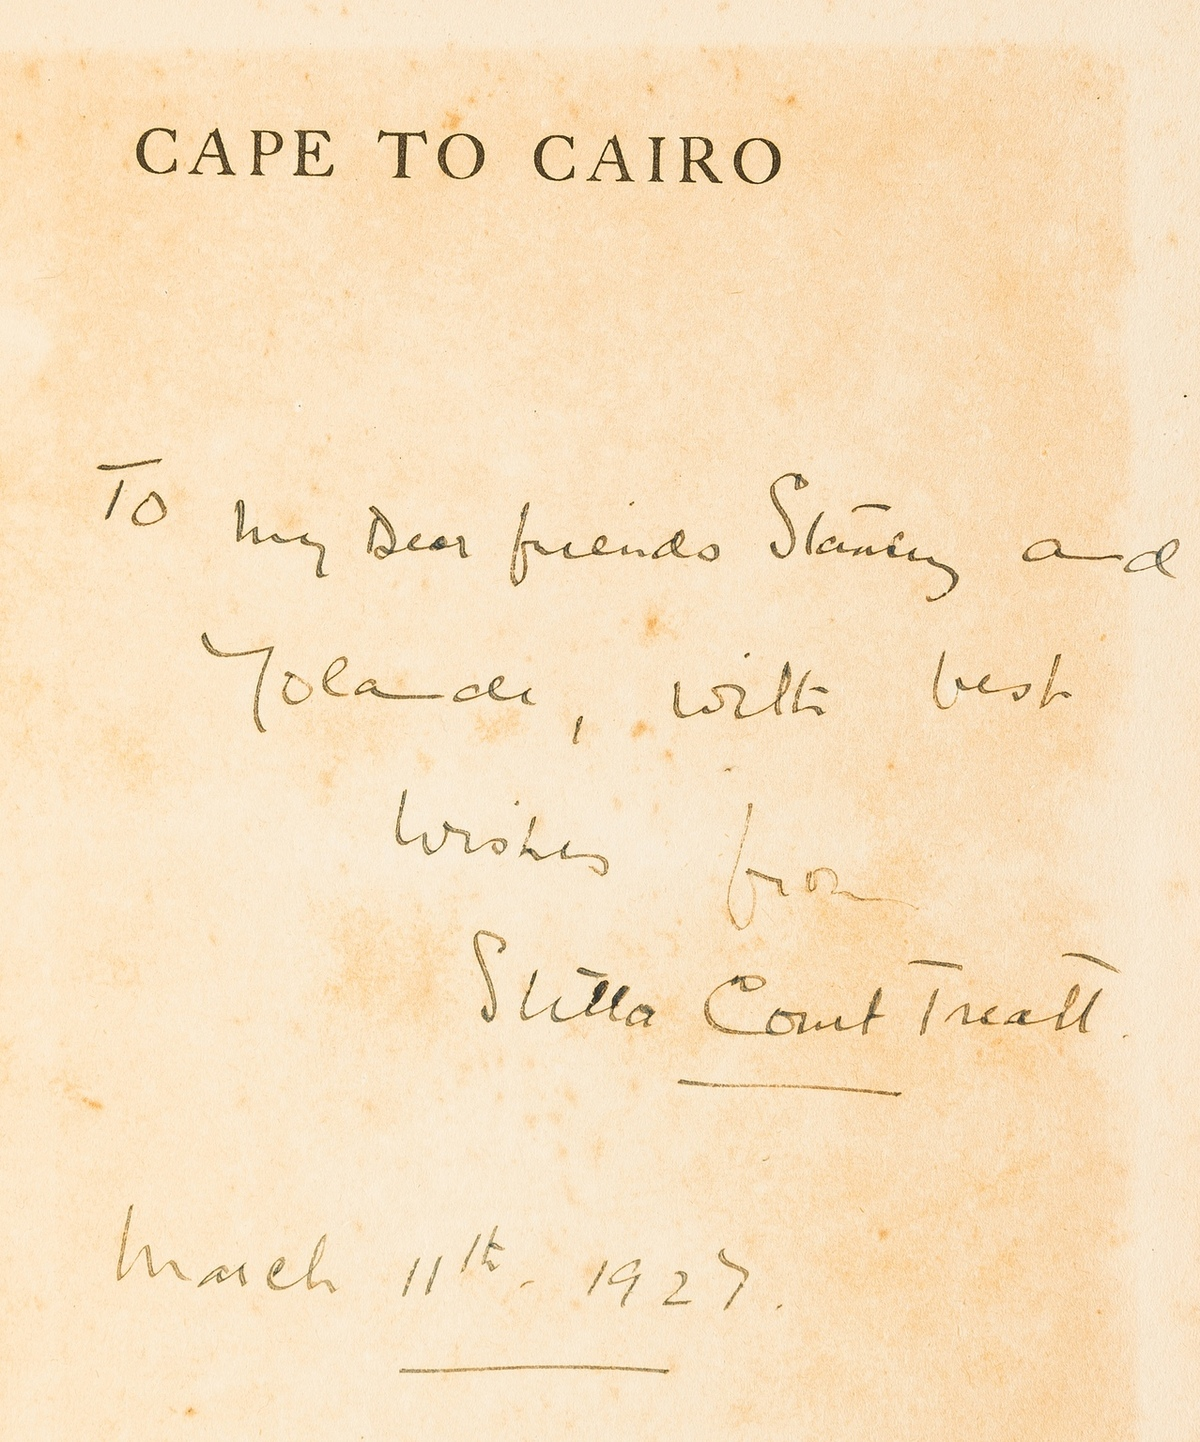 Africa.- Treatt (Stella Court) Cape to Cairo: the Record of a Historic Motor Journey, first … - Image 2 of 2